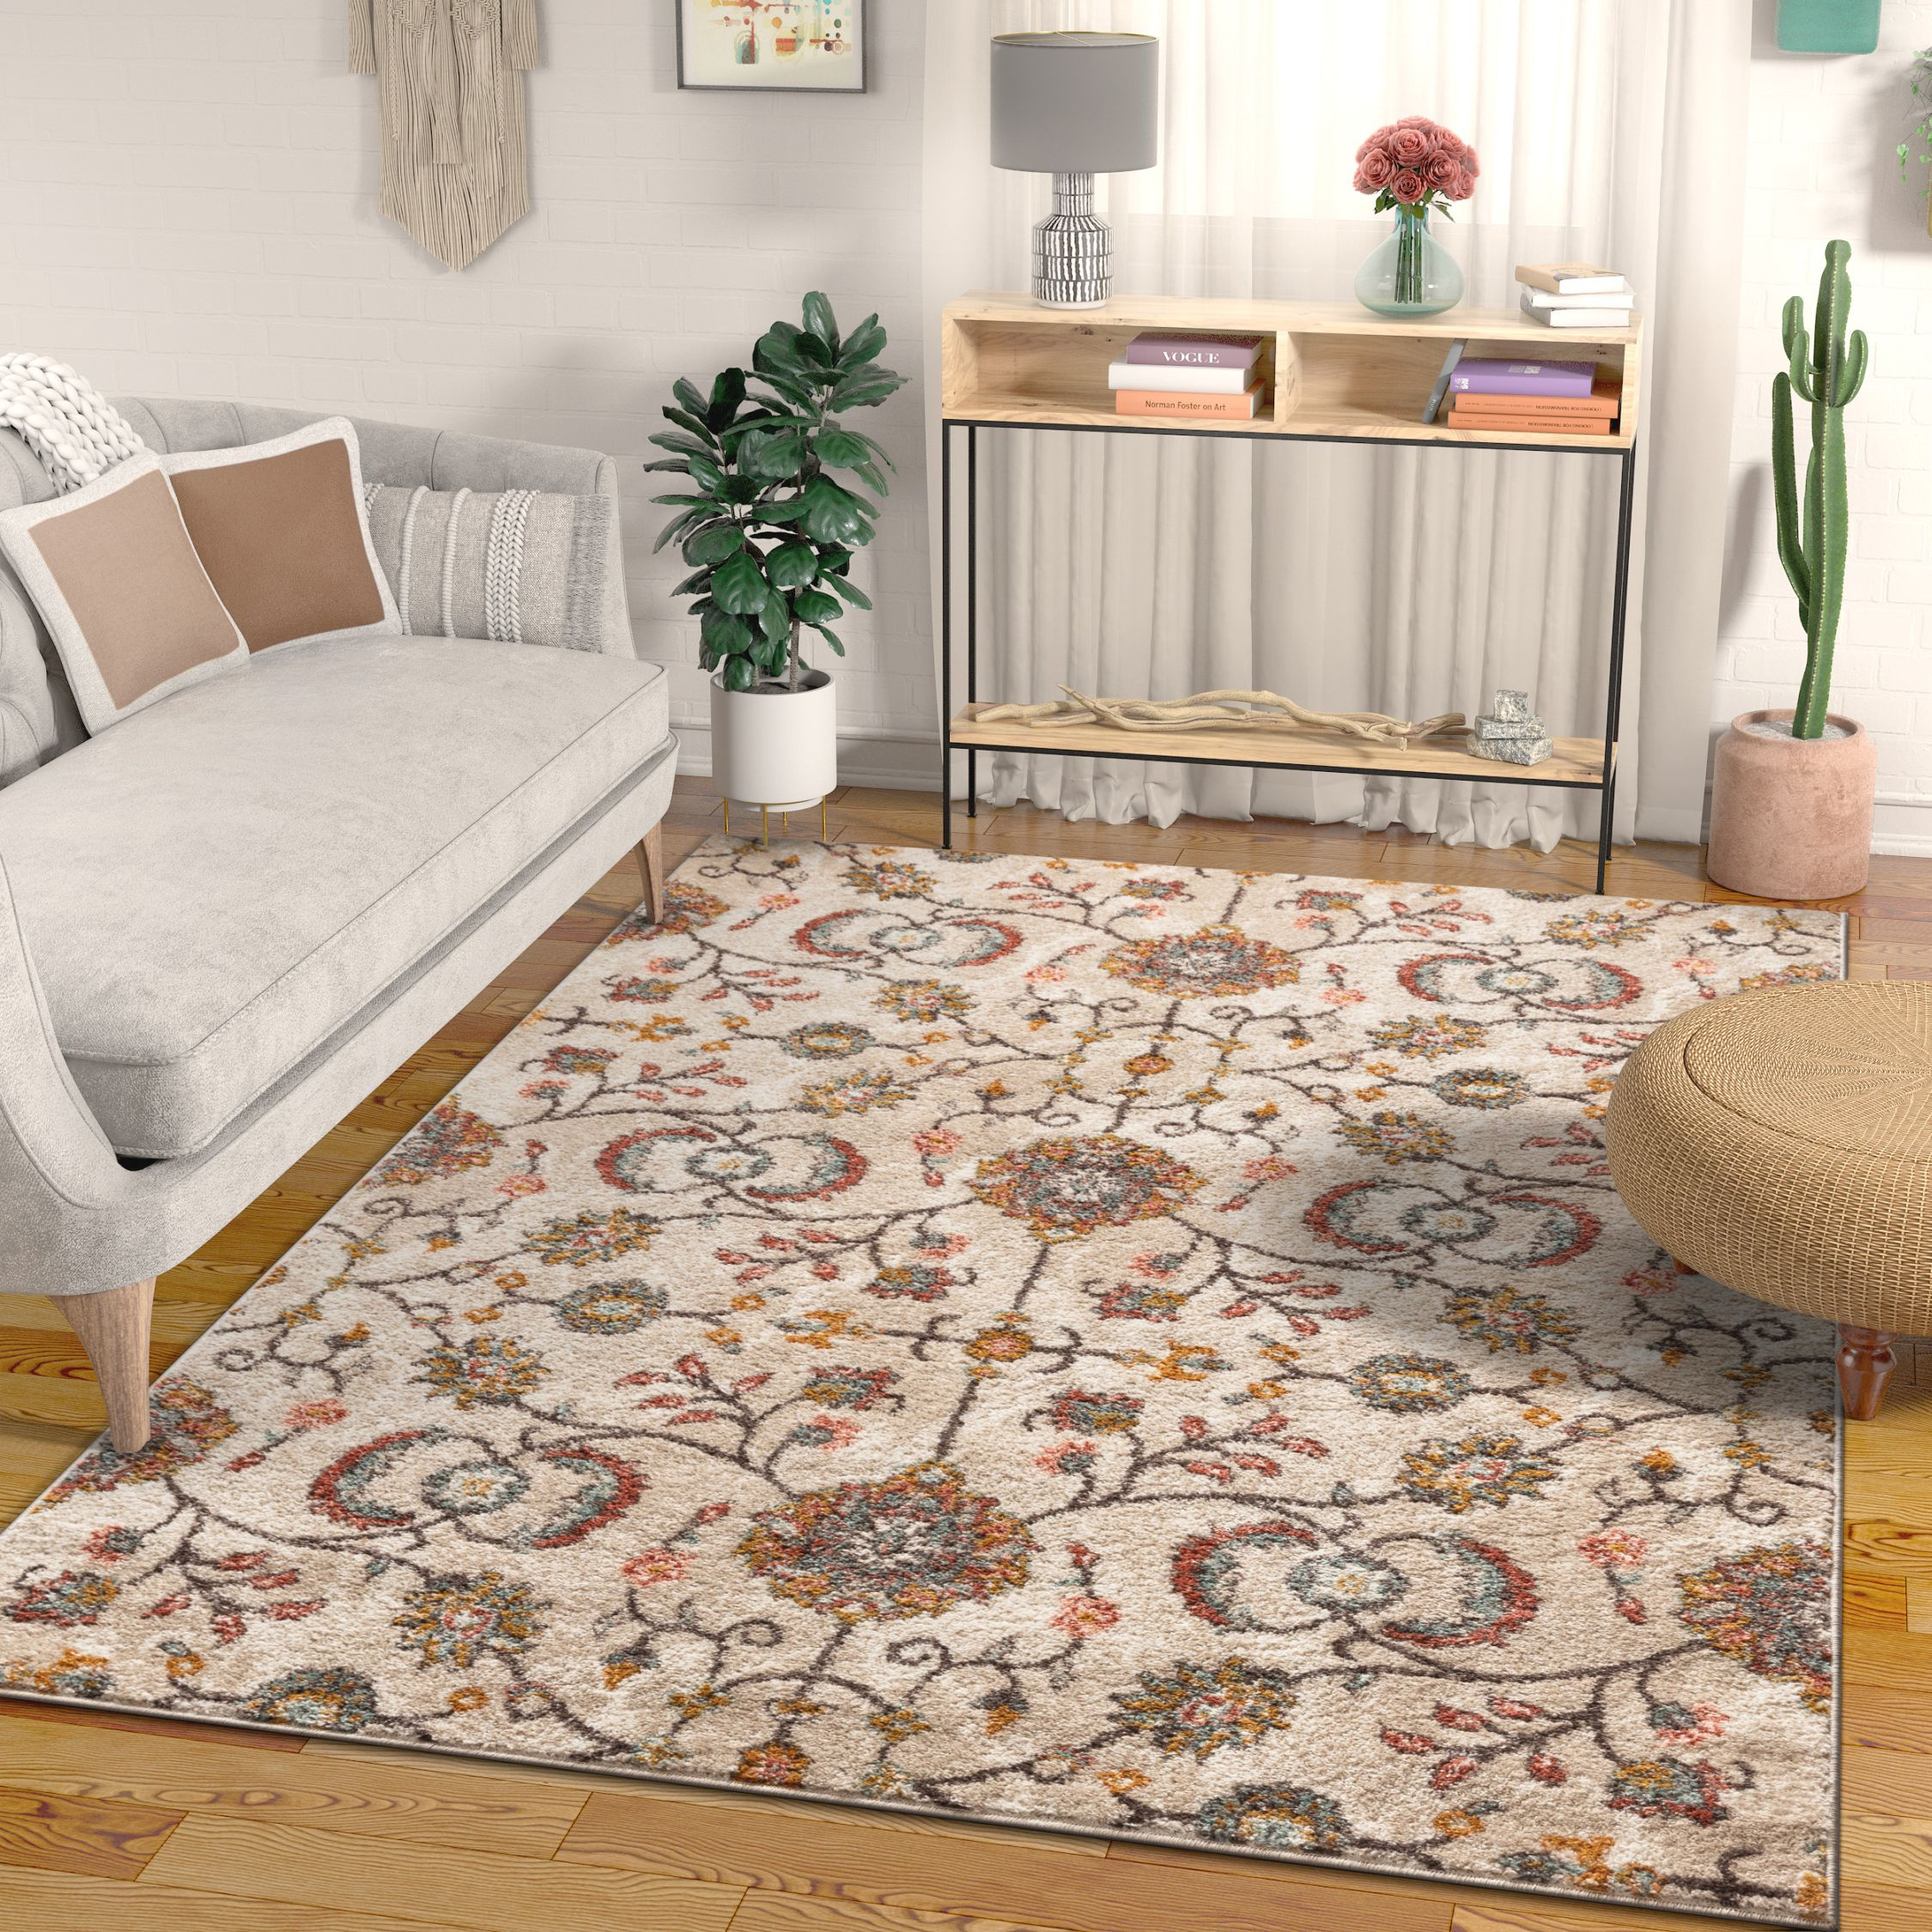 "Well Woven Ensley Boho Persian Vintage Beige & Blush Pink Multicolor Area Rug 5x7 (5'3"" x 7'3"")"